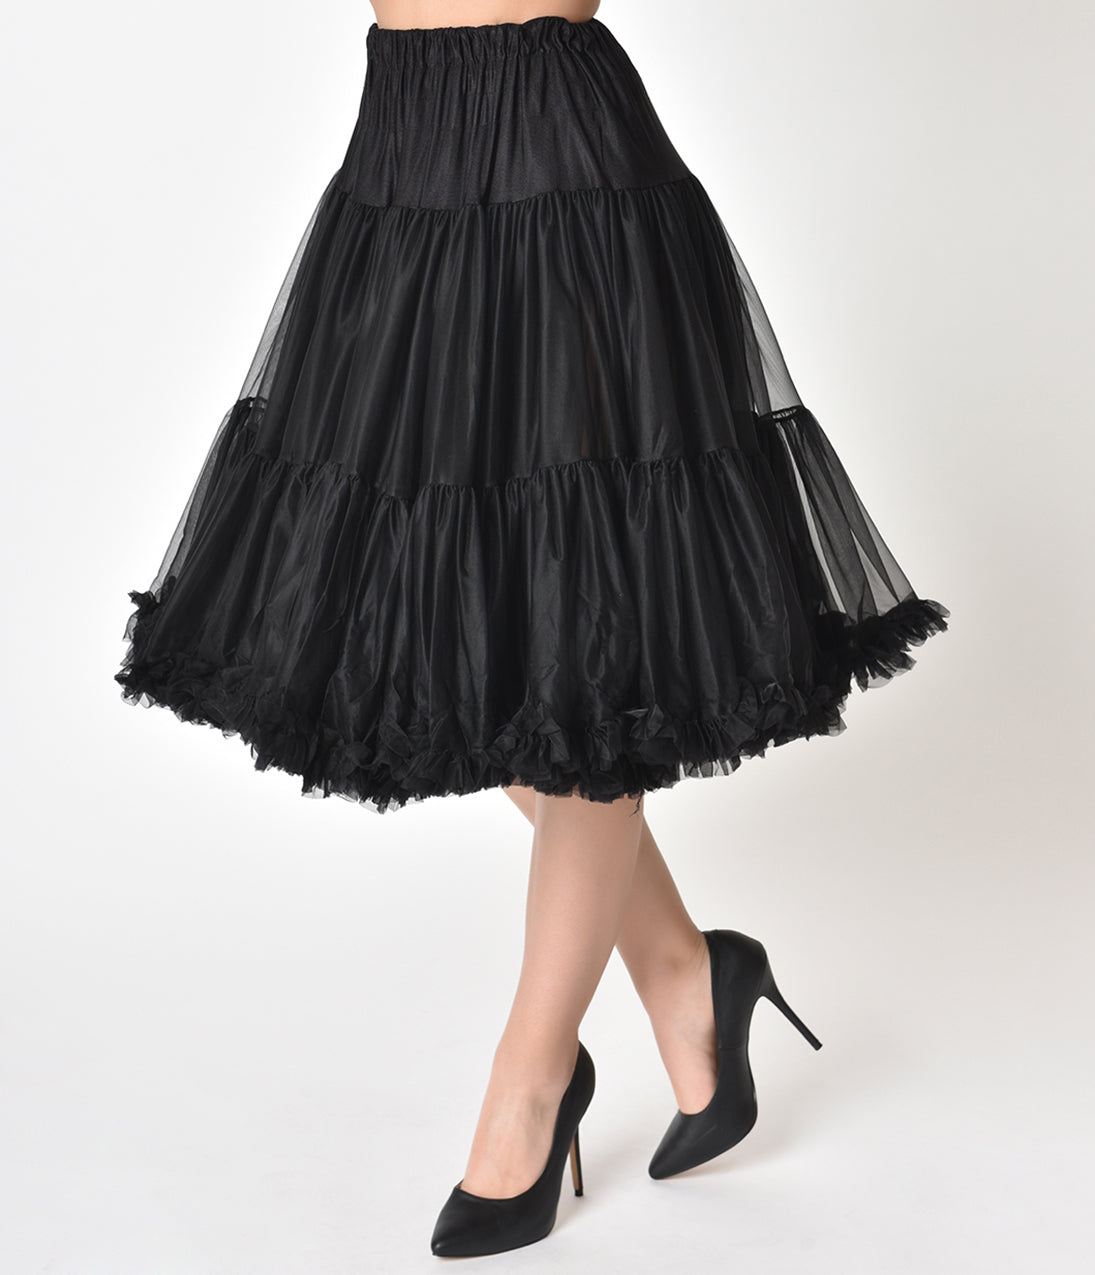 Retro Lingerie – Where to Shop Unique Vintage 1950S Style Black Tea Length Ruffled Chiffon Petticoat Crinoline $68.00 AT vintagedancer.com